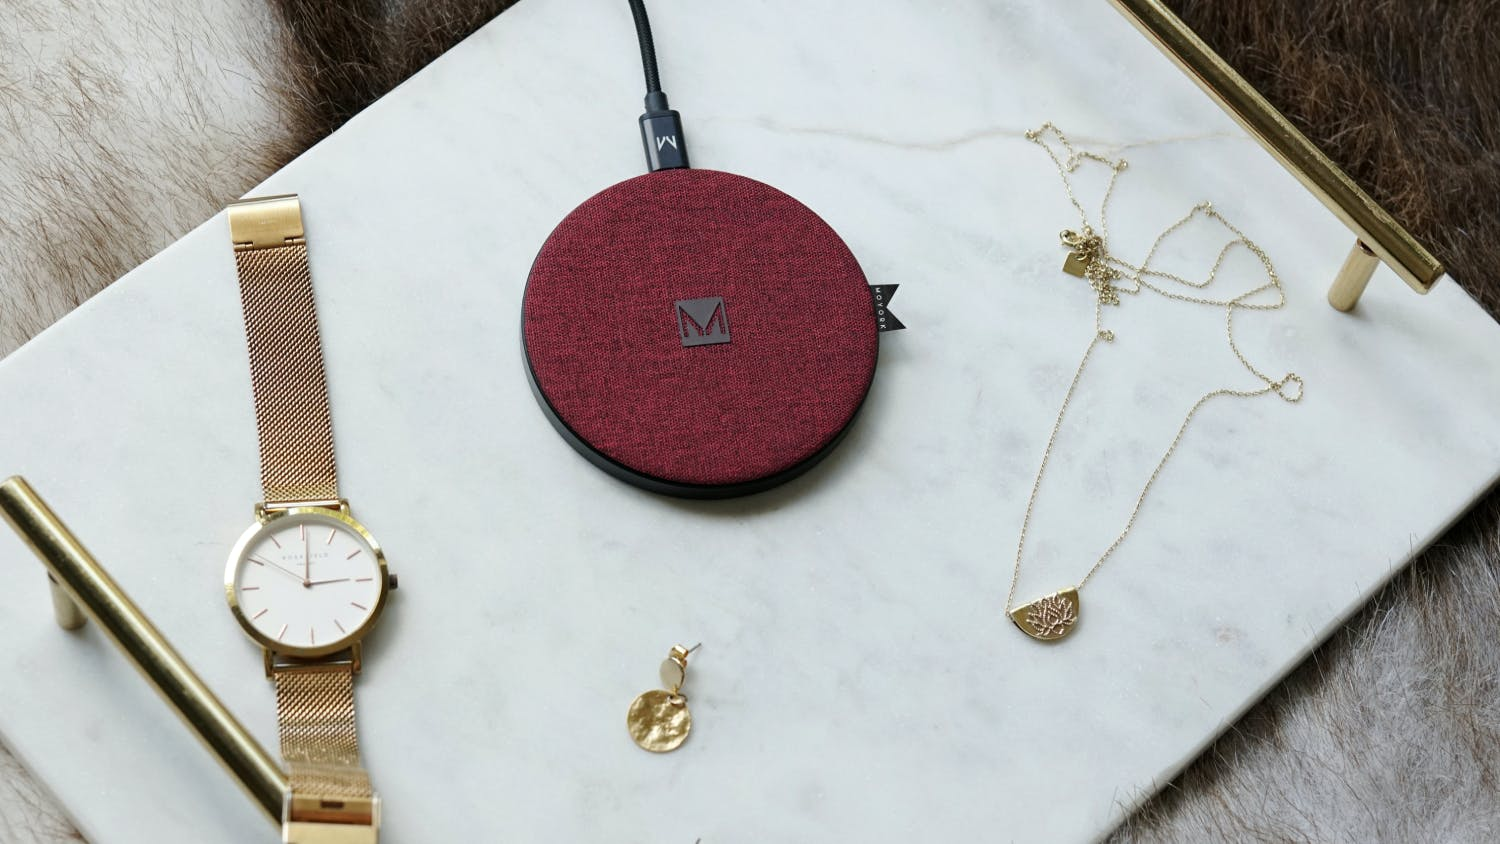 Moyork WATT 15W Qi Fast Wireless Charging Pad - Merlot Red Fabric